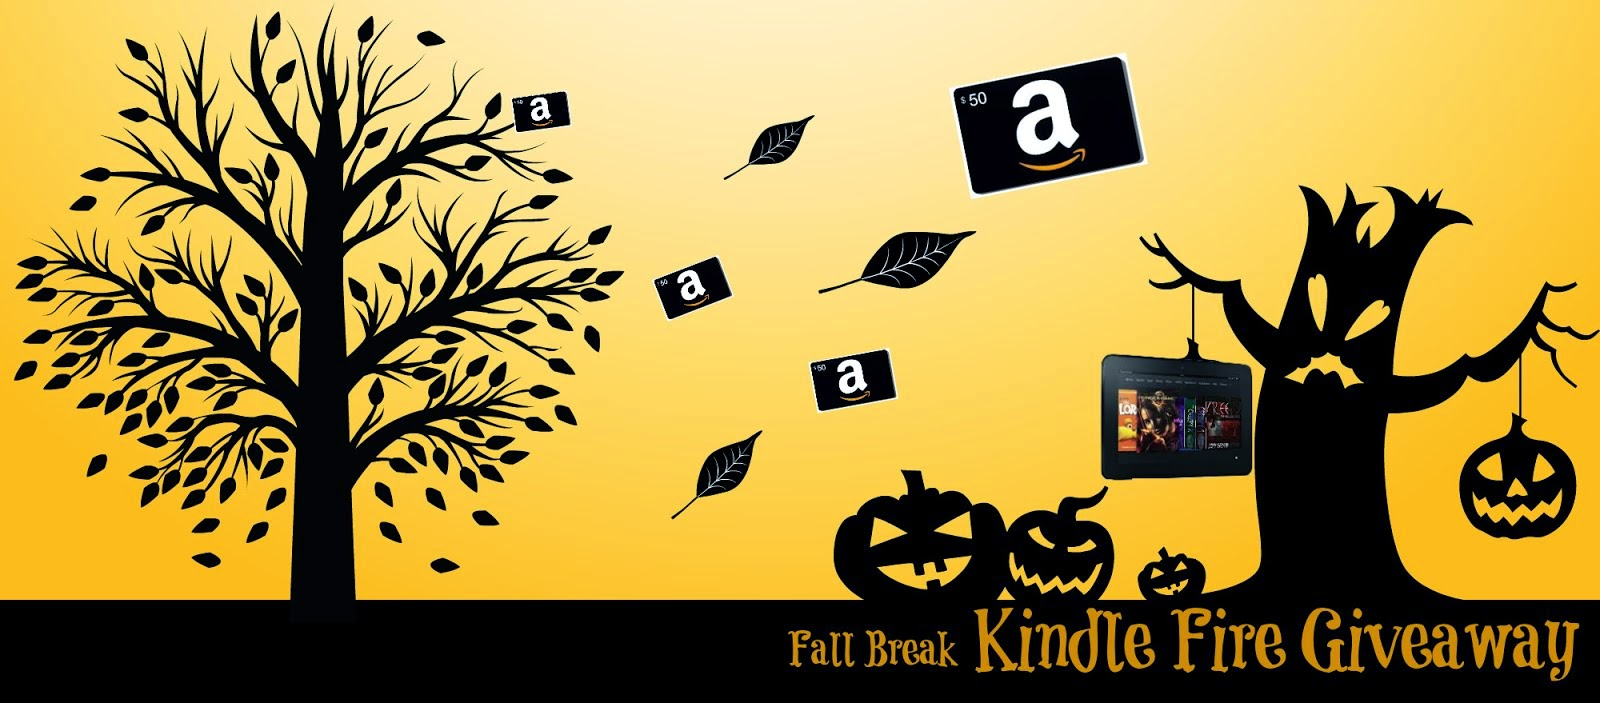 Win a Kindle Fire or $50 Amazon GC!